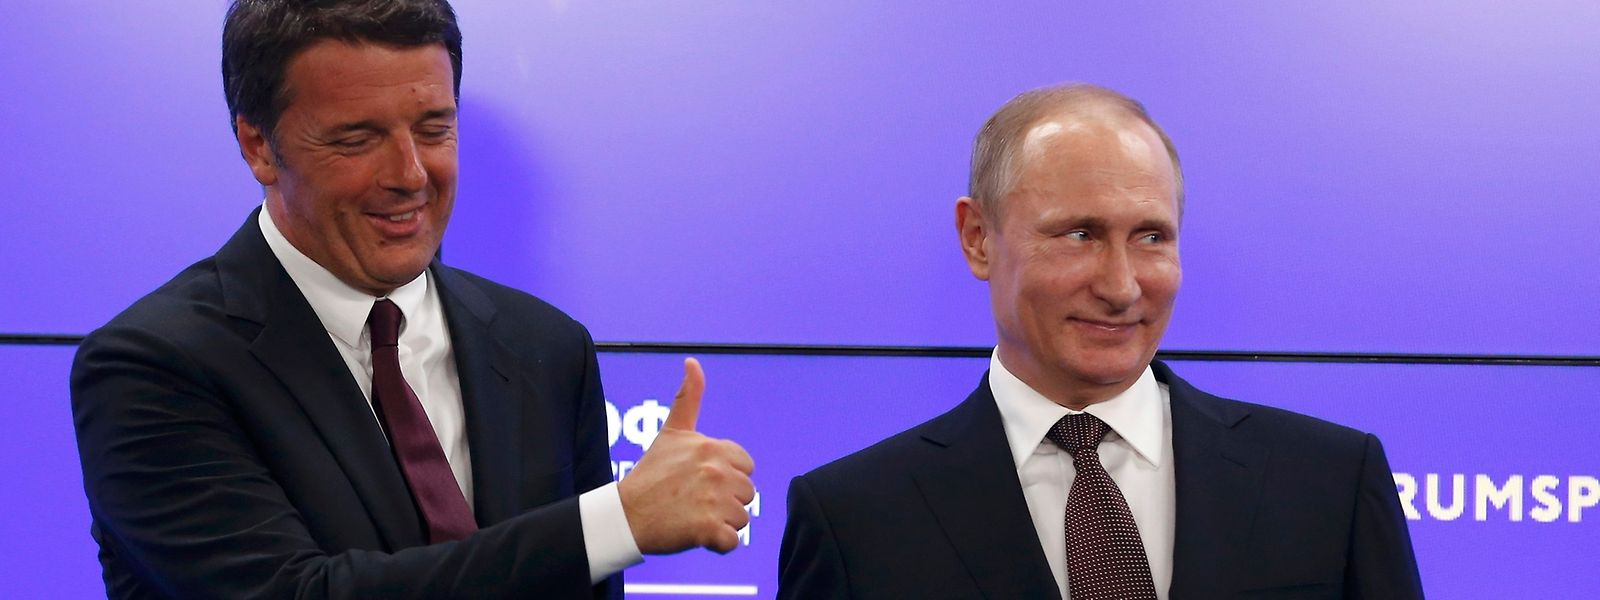 Matteo Renzi und Wladimir Putin beim St. Petersburg International Economic Forum 2016.